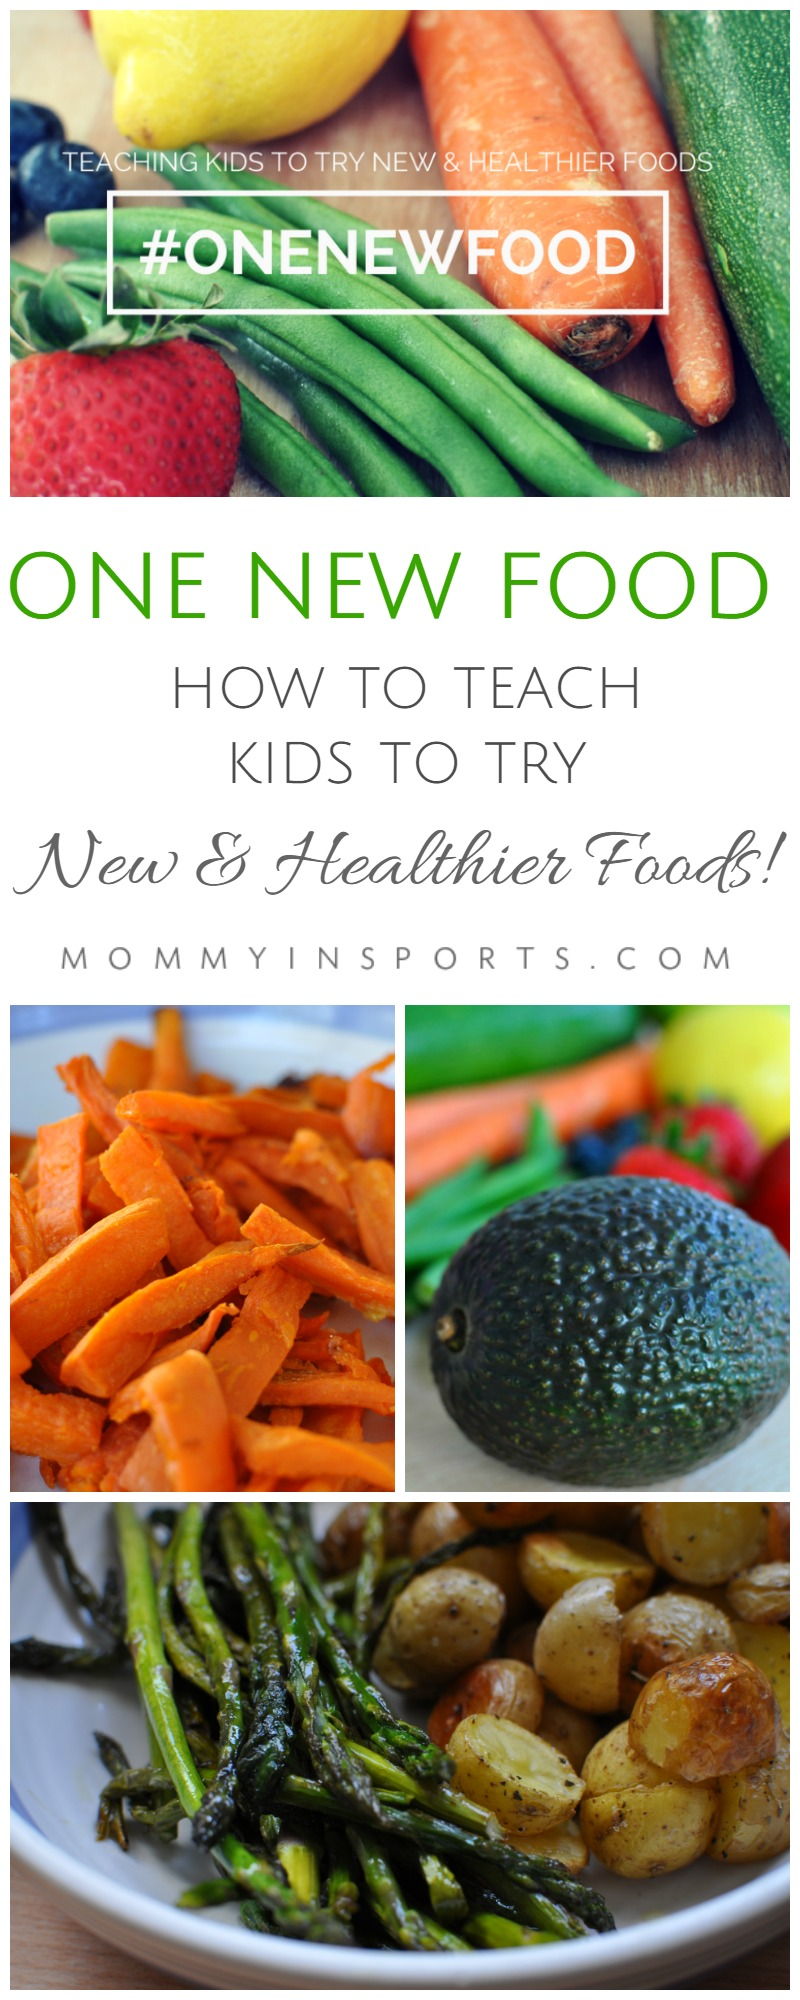 Do you struggle with meal times in your house? Most kids don't like new textures, sights, and smells on their plates. But trying this ONE NEW FOOD strategy really works. Do you need help with picky eaters? Start here!